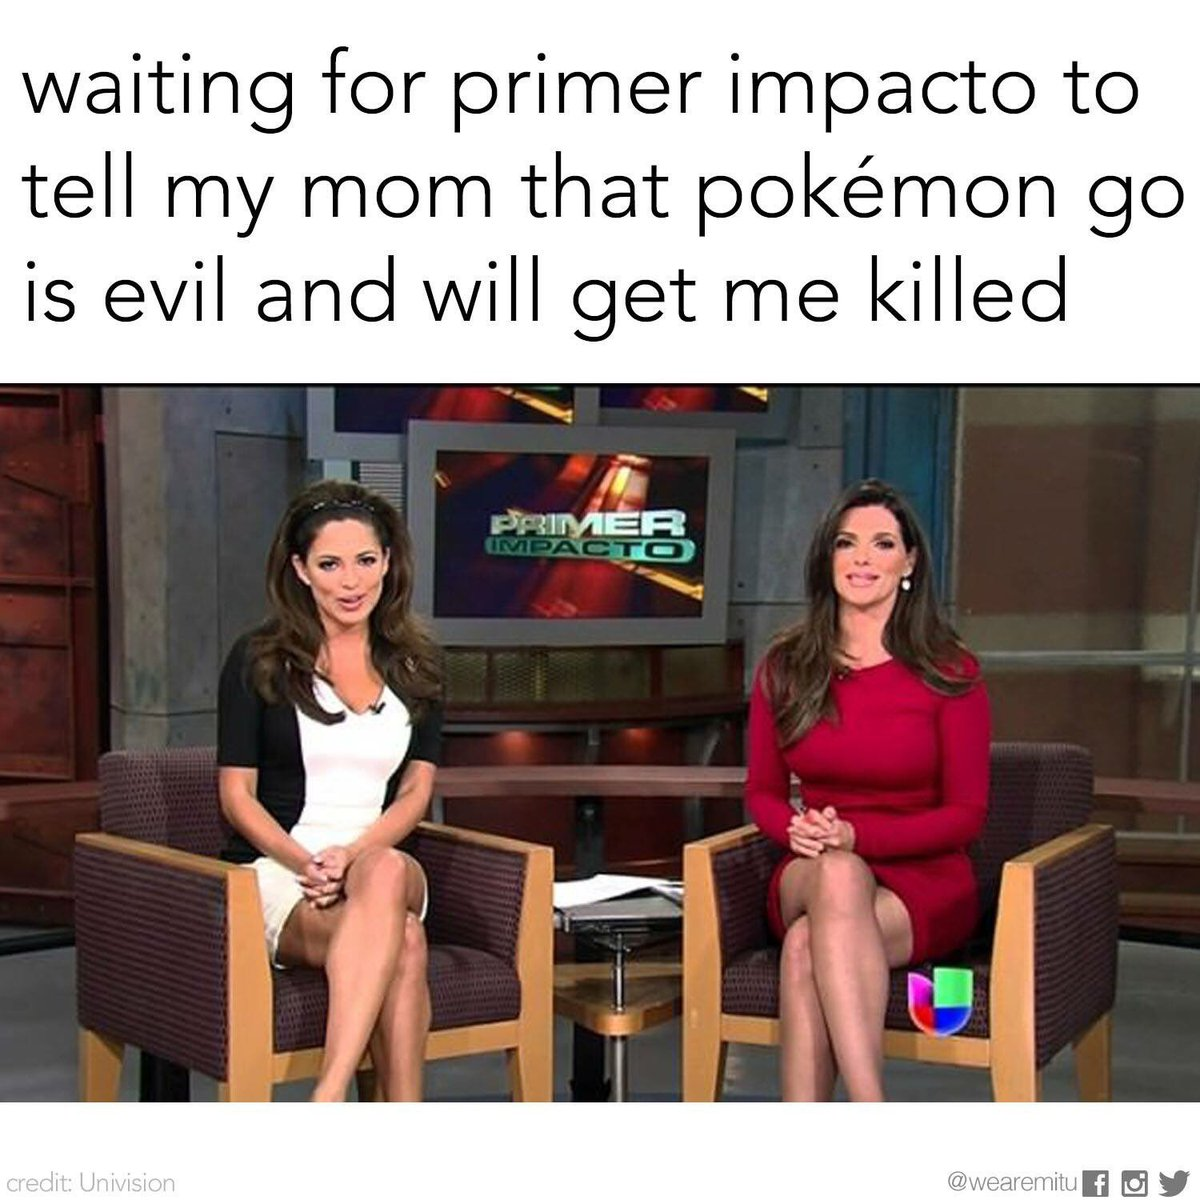 #PokemonGO #News